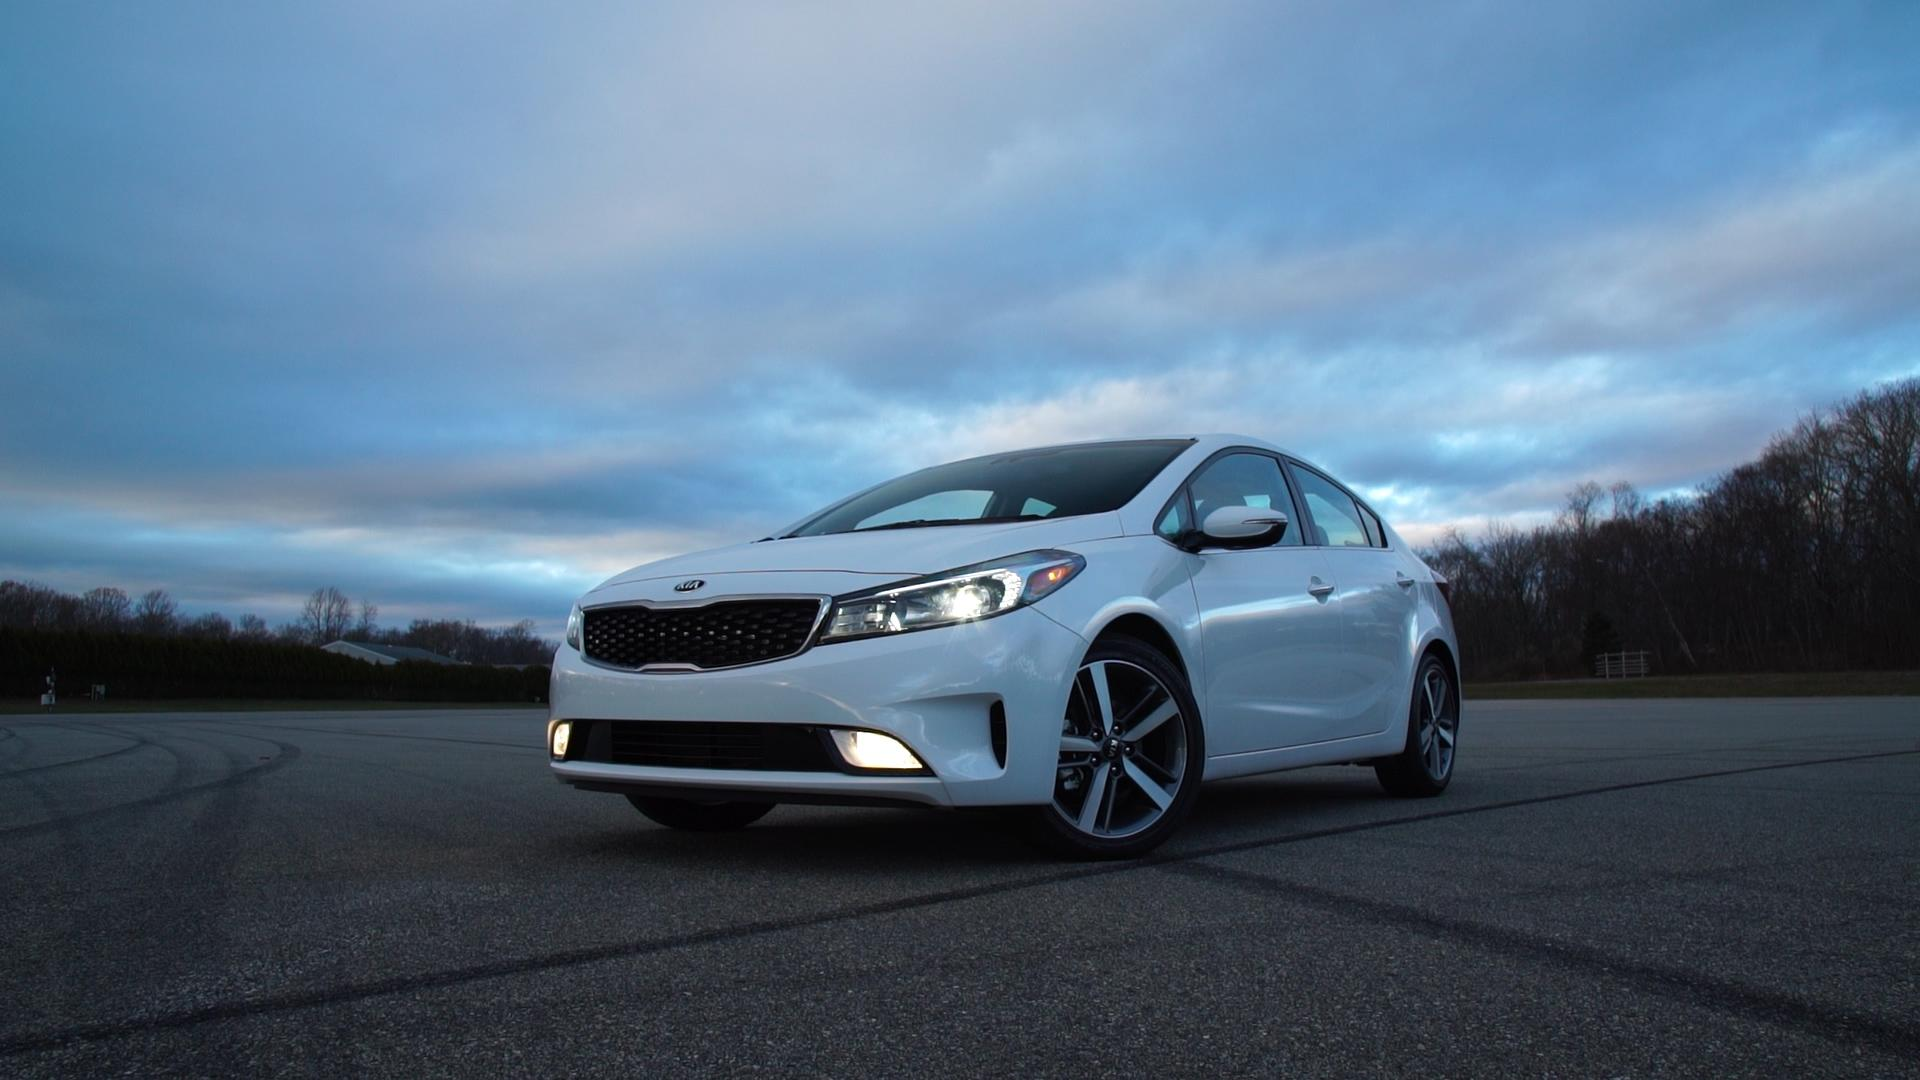 Updated 2017 Kia Forte Offers Much for the Money - Consumer Reports